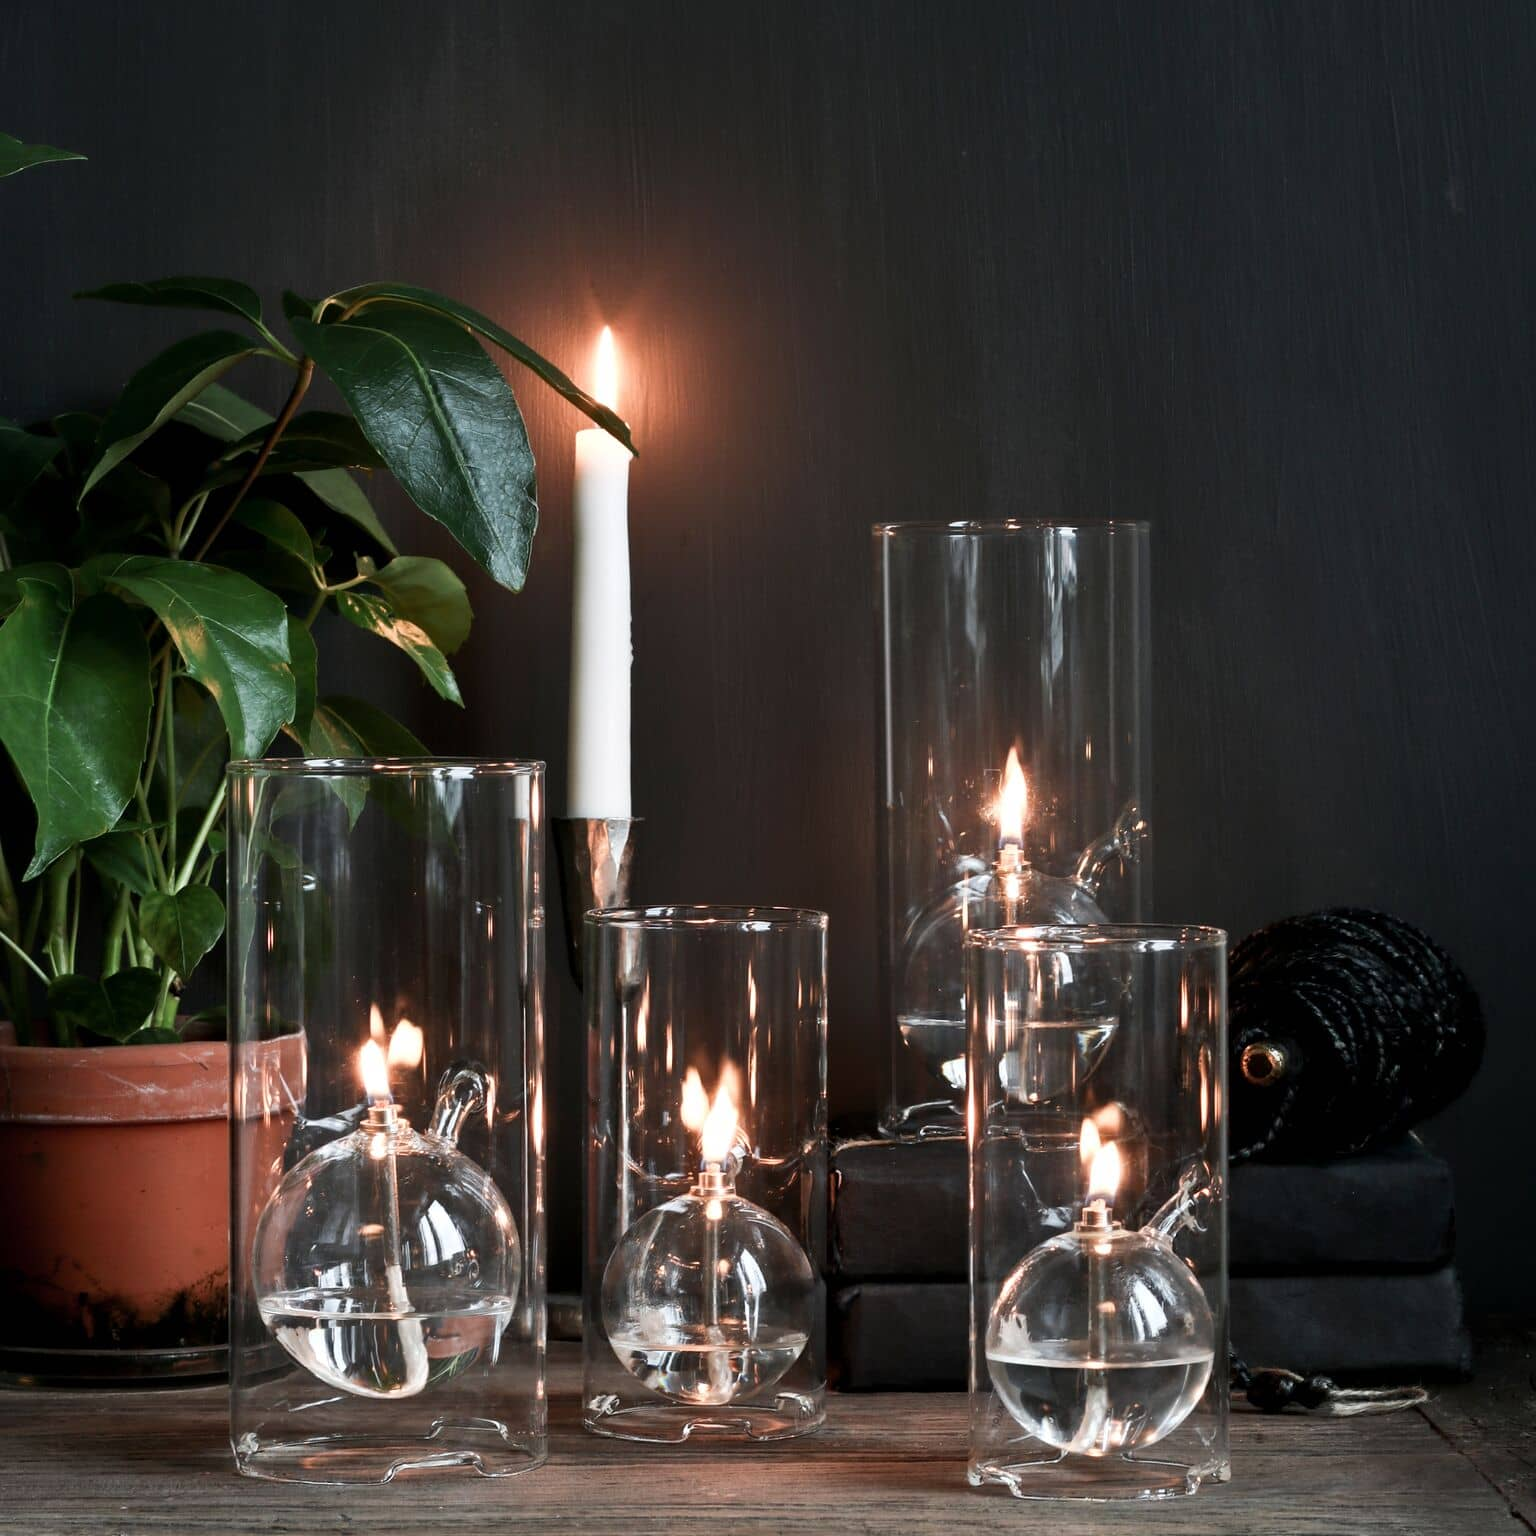 Lamps And More: Tell Me More